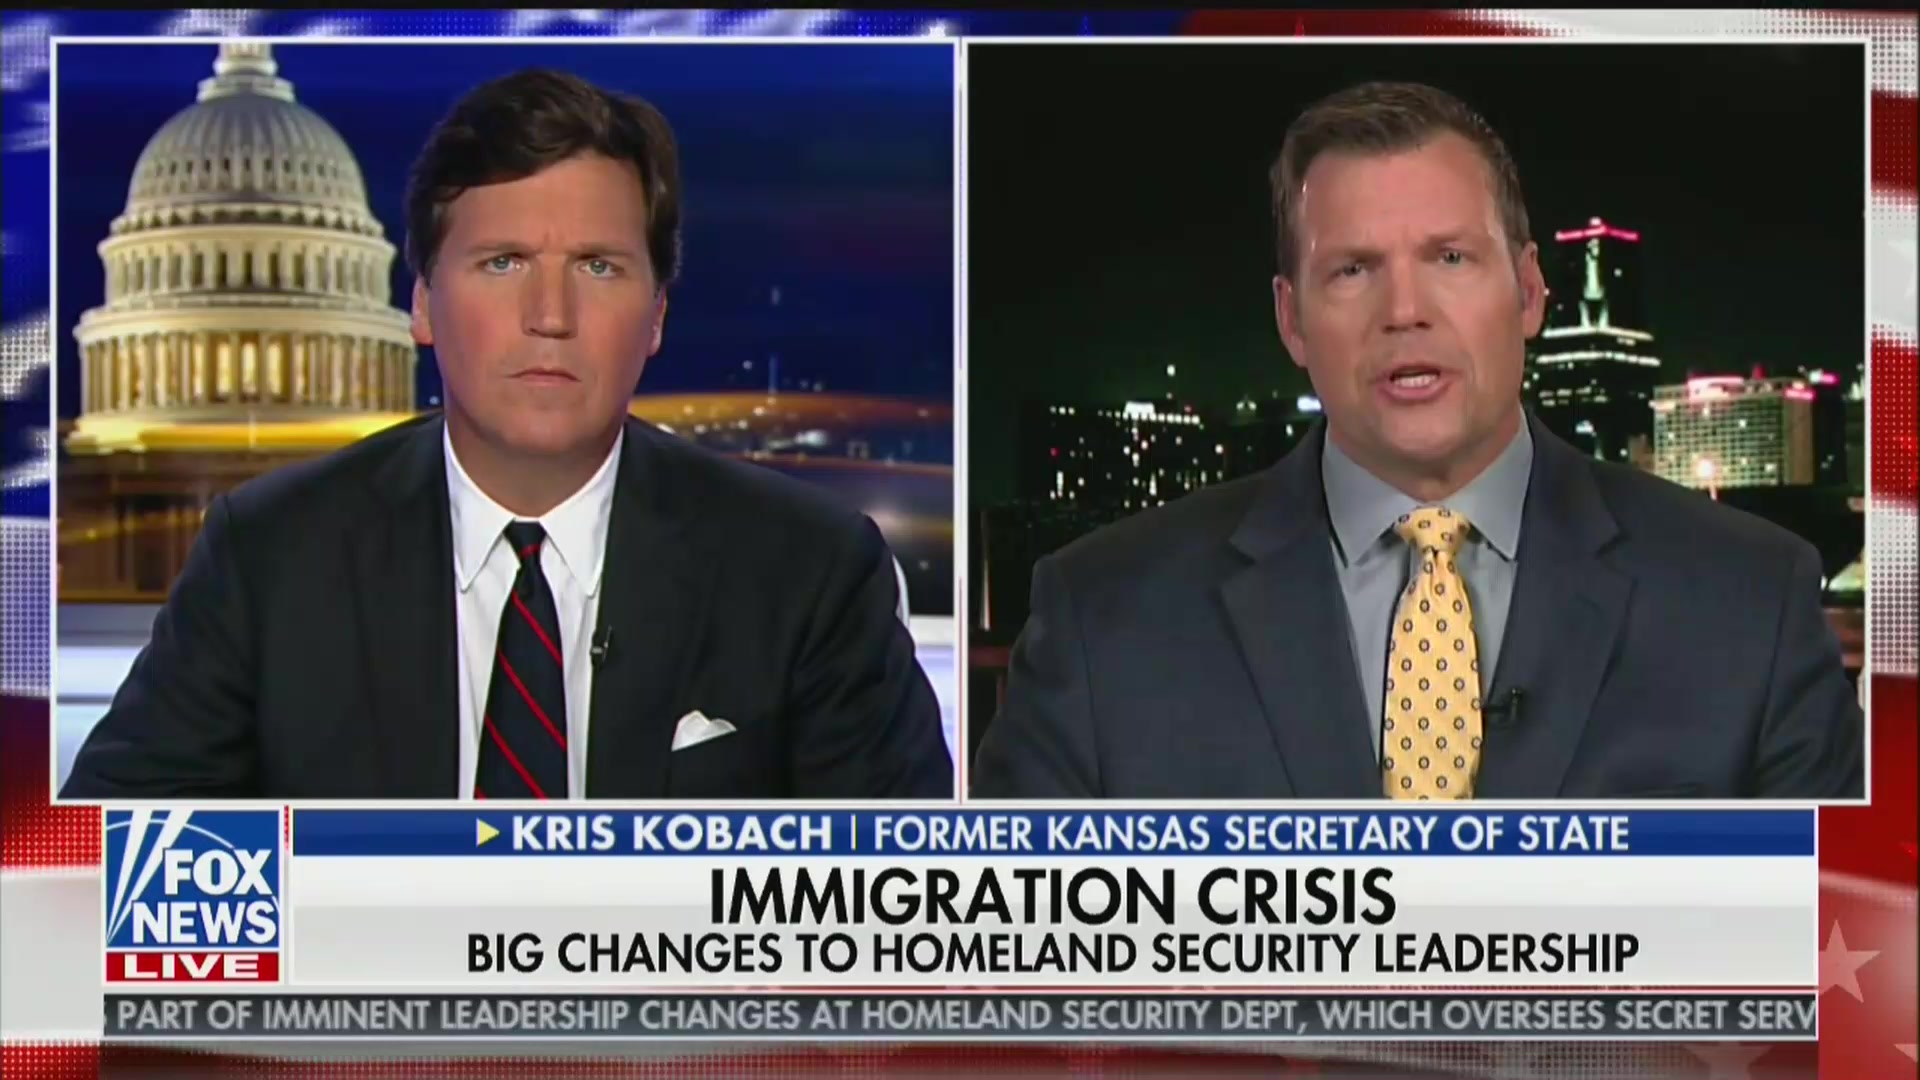 Kris Kobach Interviews For DHS Secretary Job on Fox News: I'd Set Up 'FEMA' Camps to Process Refugees